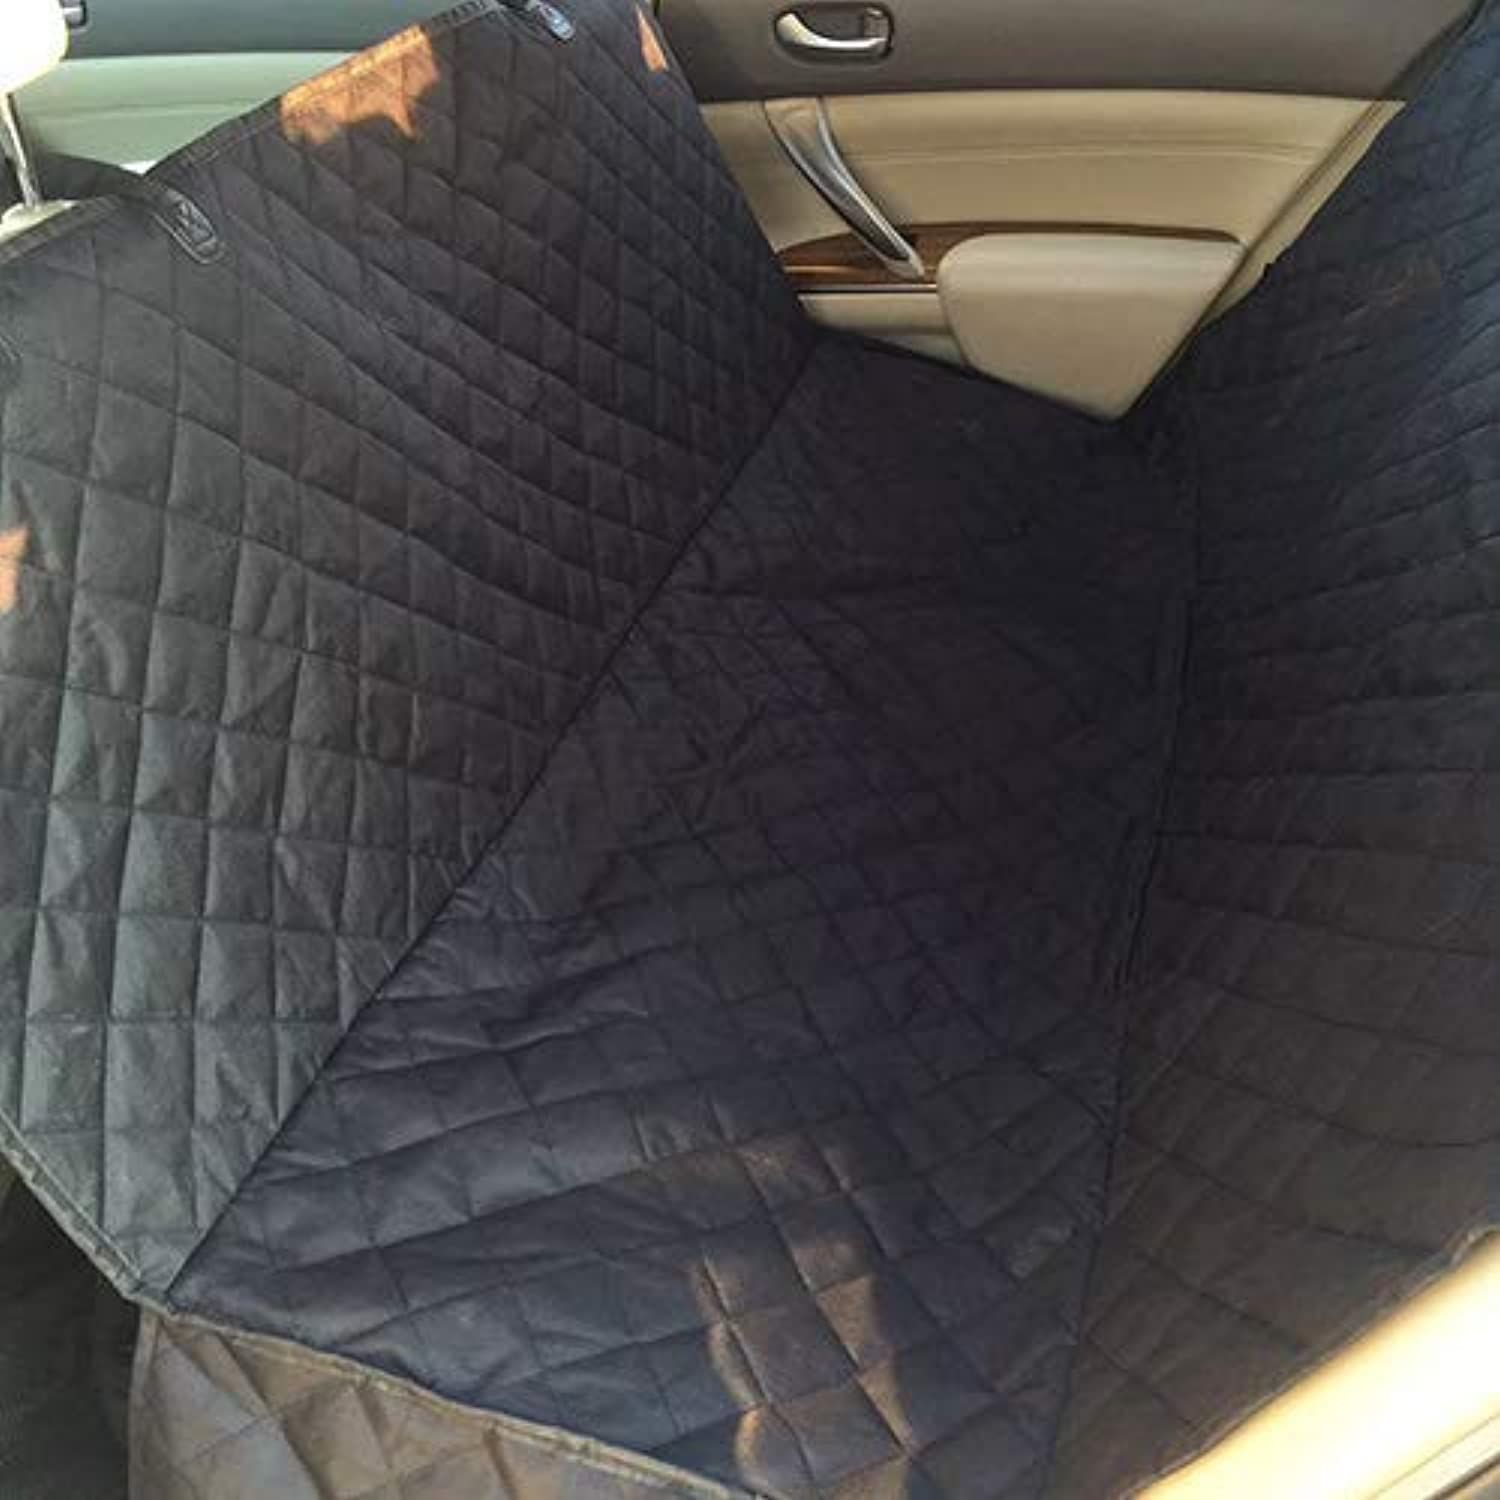 QNMM NonSlip Universal Pet Seat Covers Car Seat Cover For Dog WaterProof Predector For Pet Rear Seat Cover